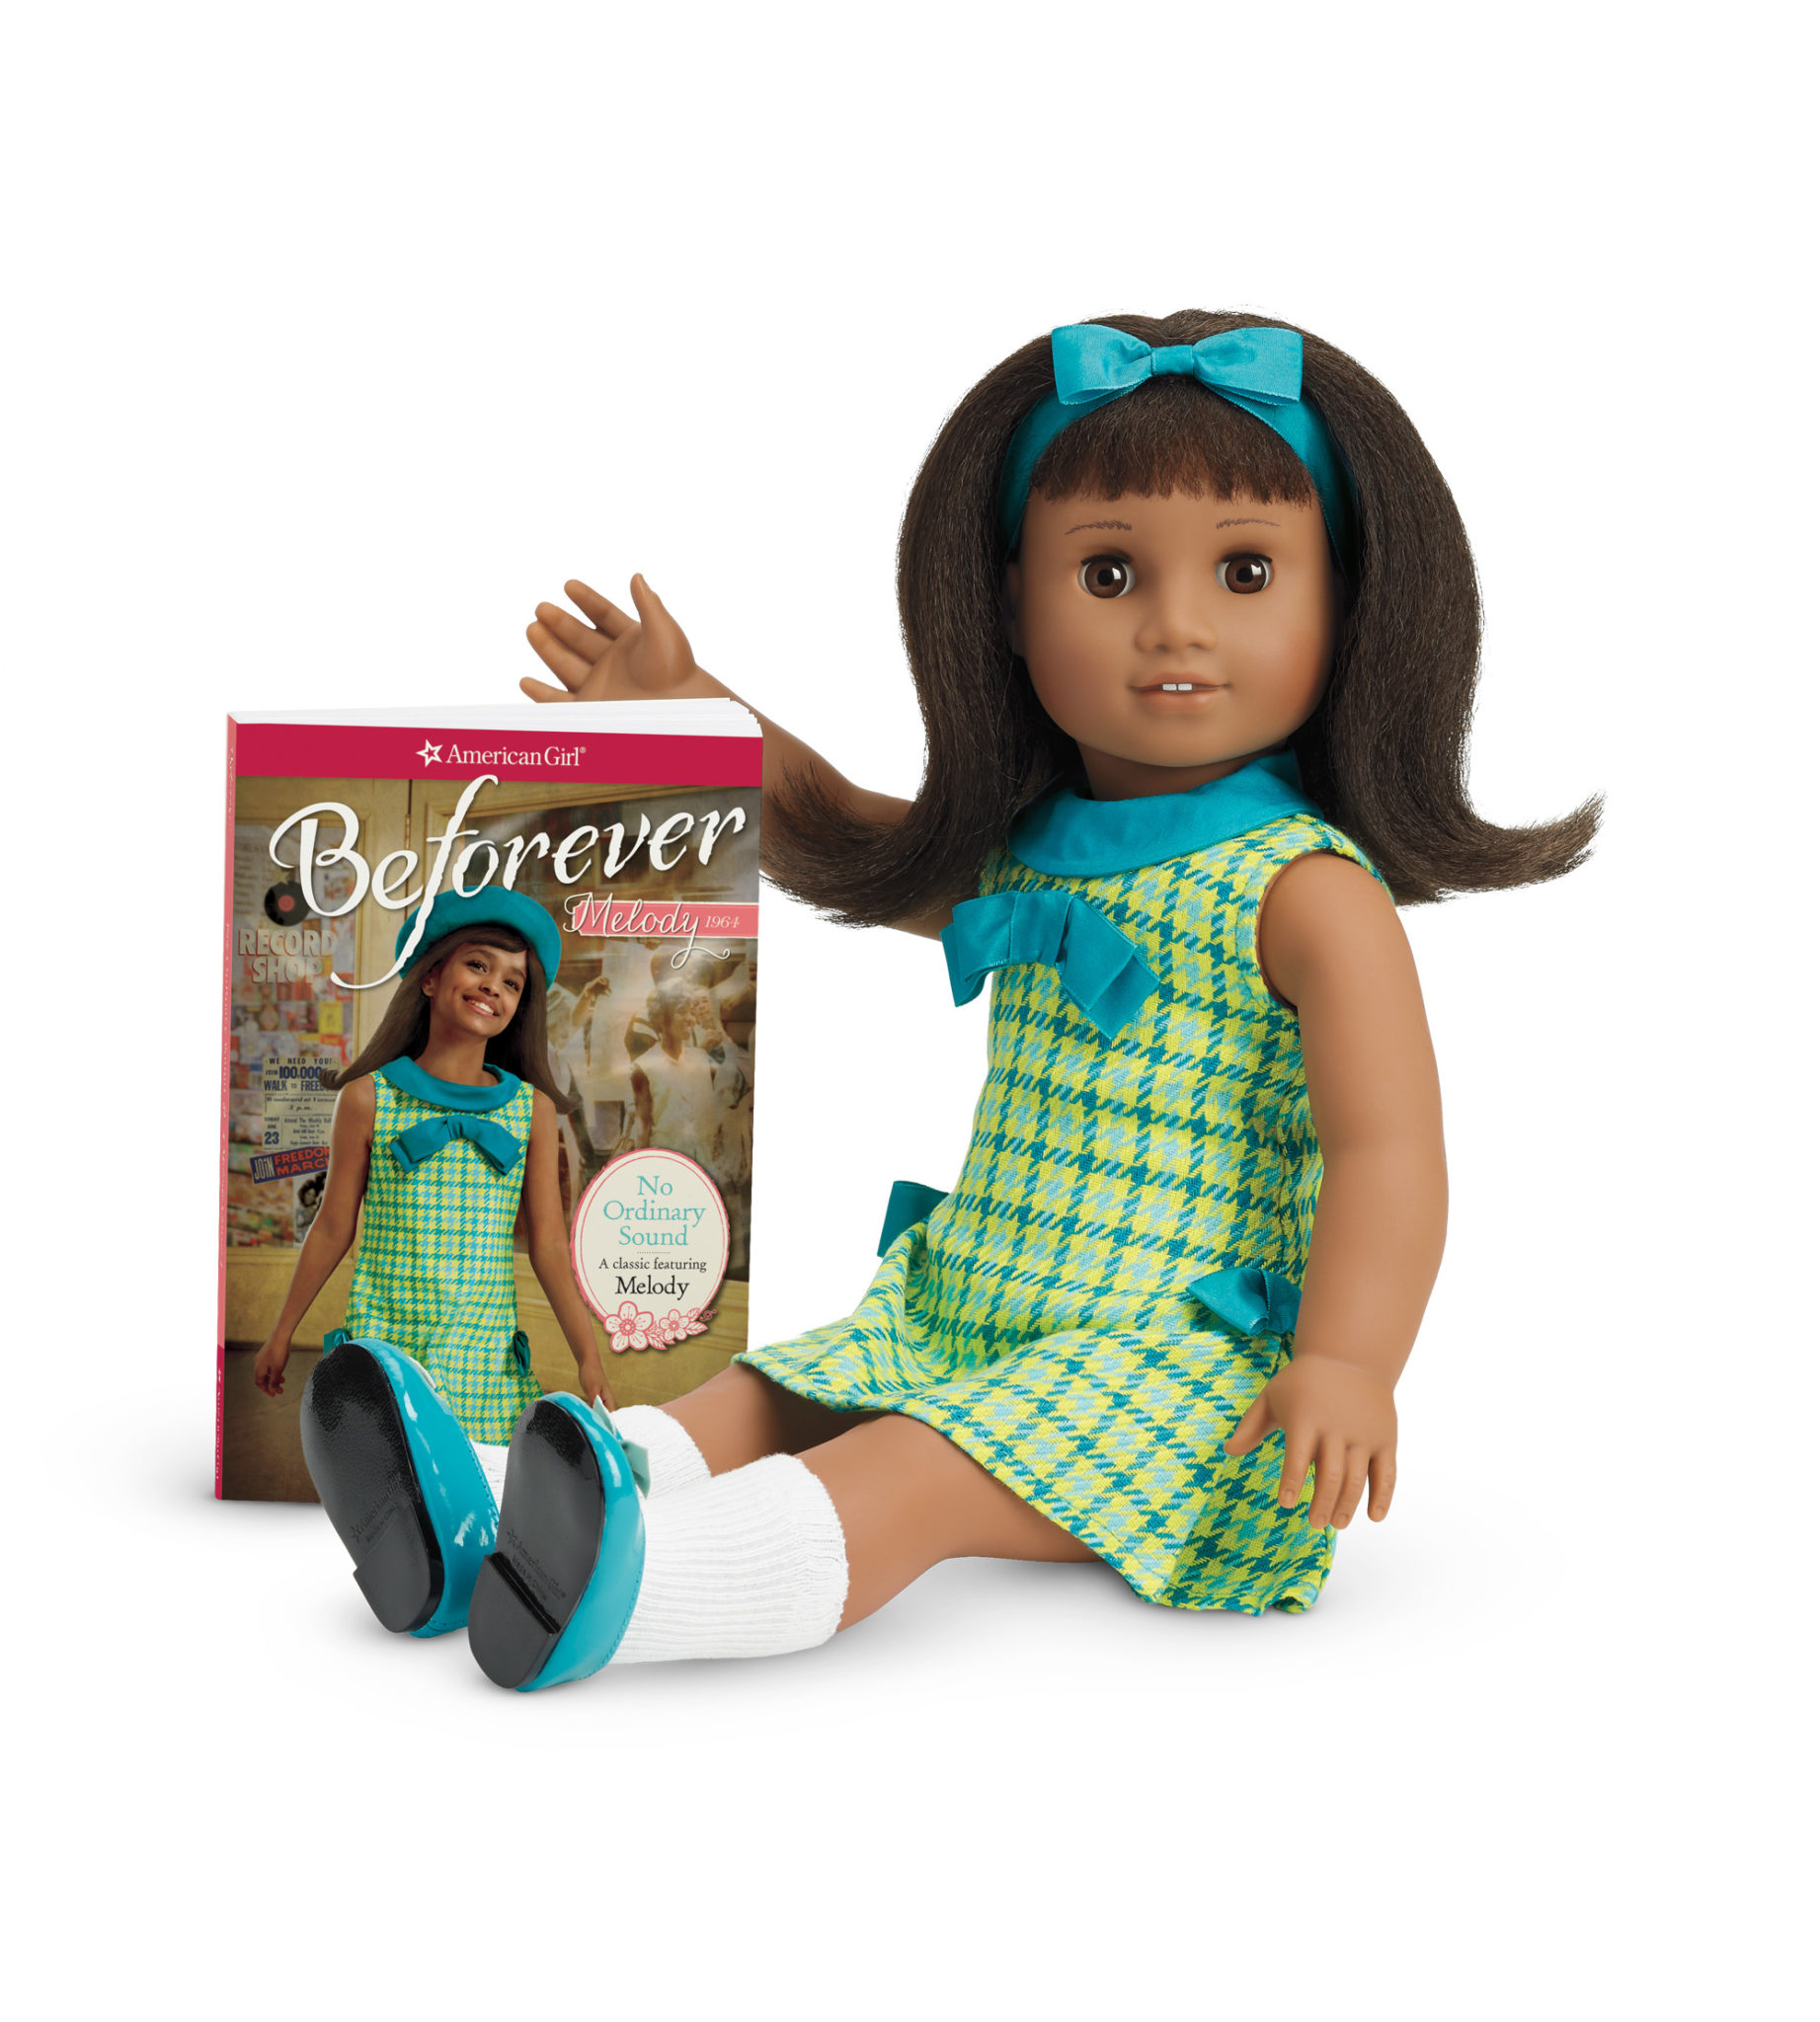 American Girl To Launch New Doll Melody Ellison